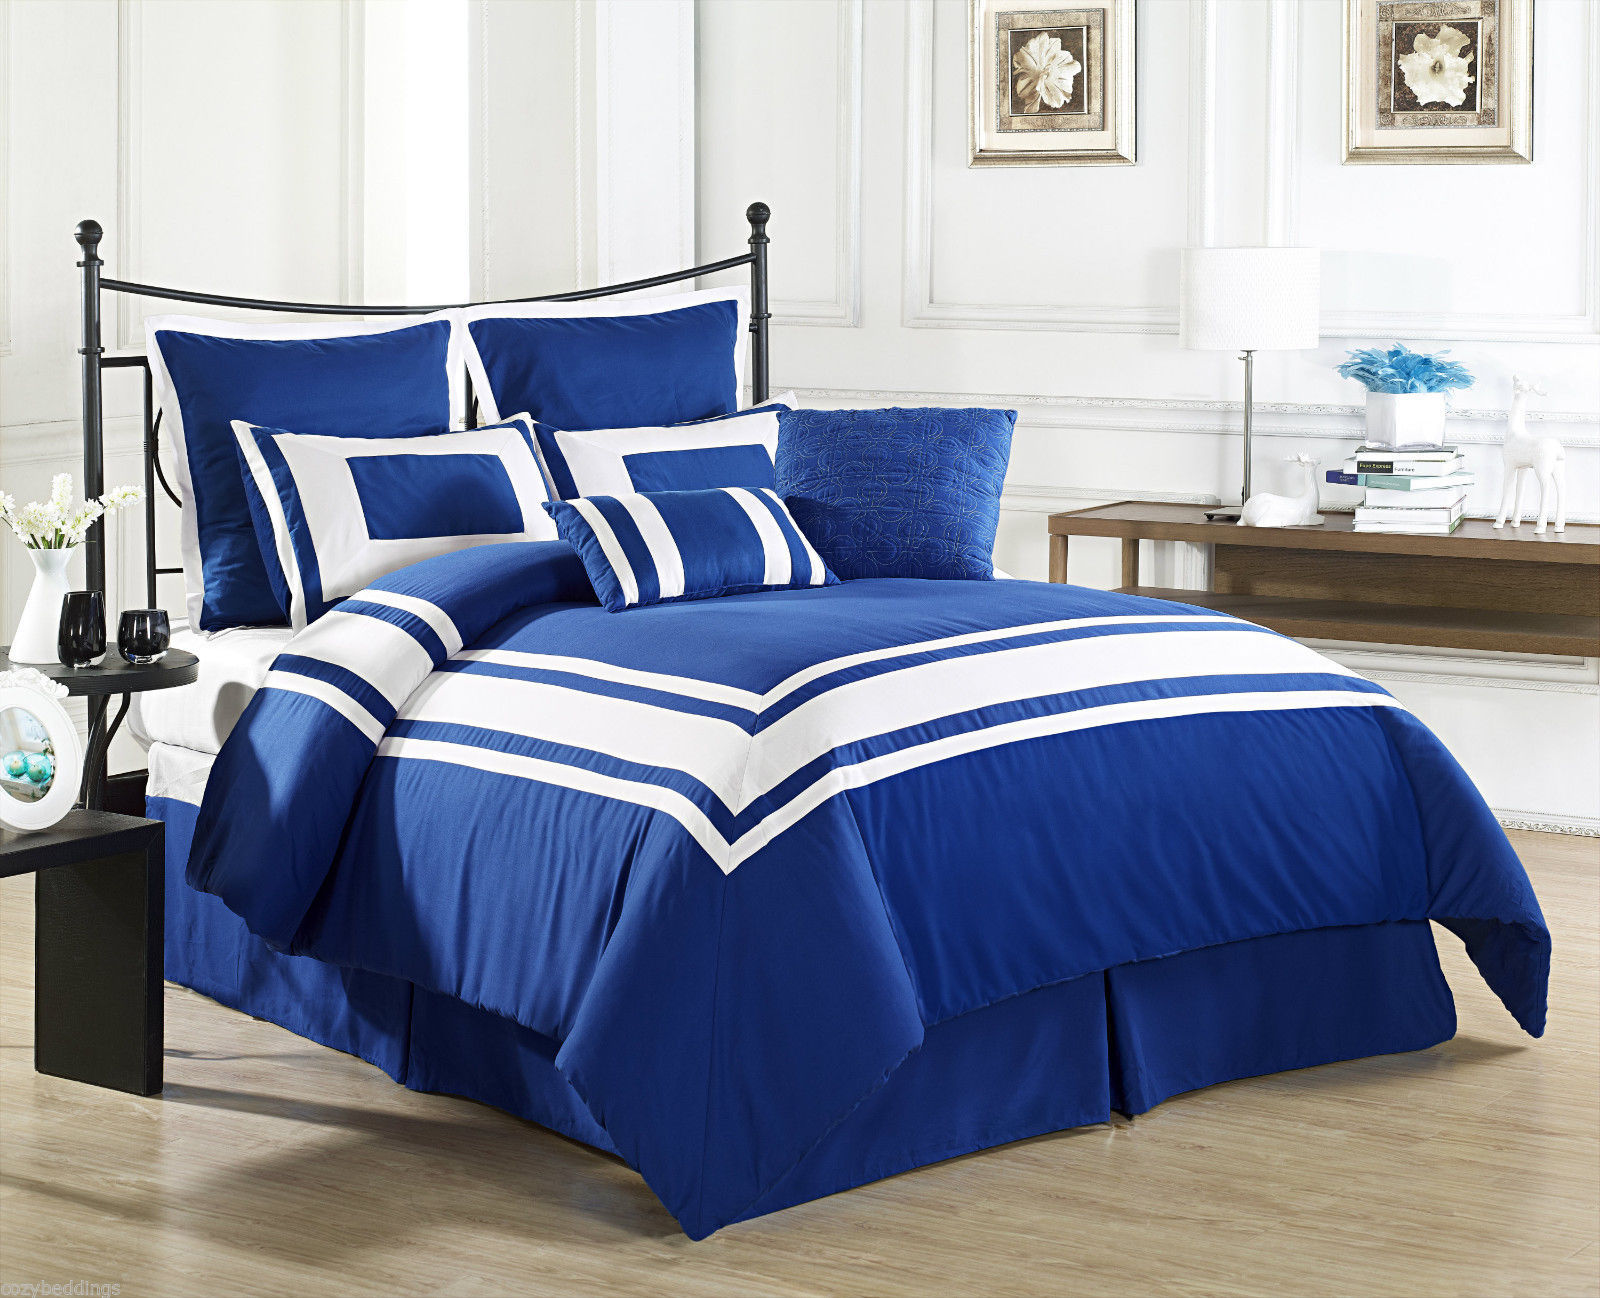 Image of: Calm Navy Blue Quilt